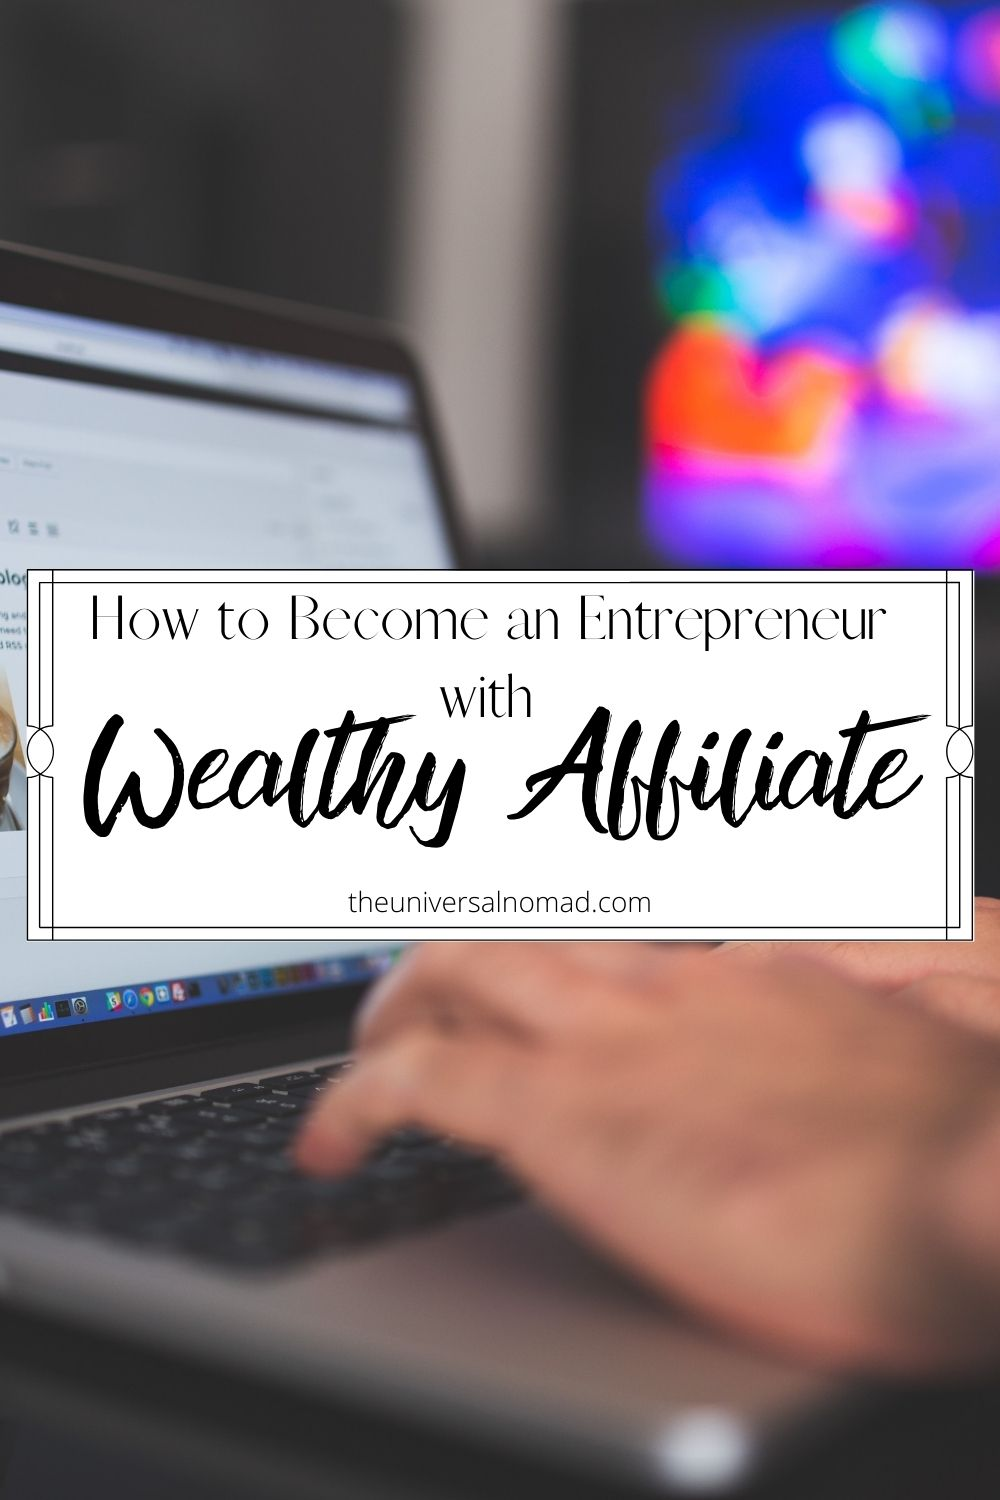 How to become an entrepreneur with wealthy affiliate - my review